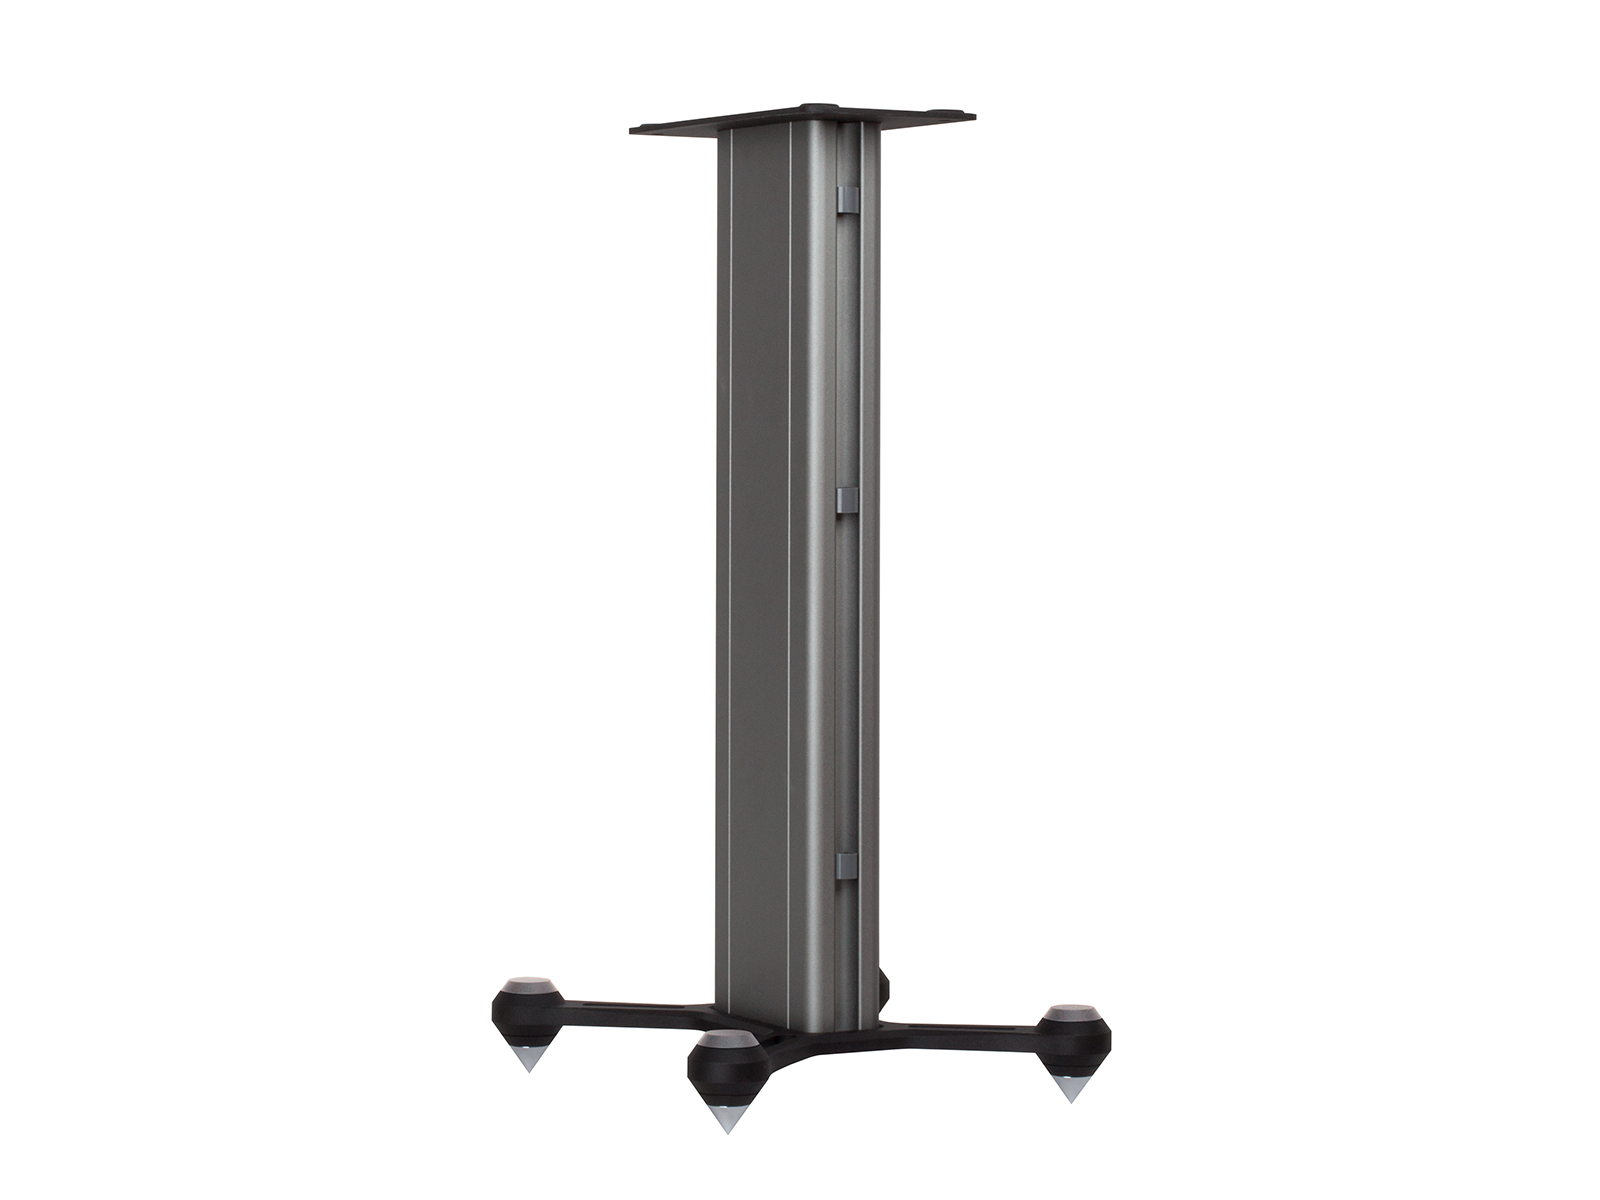 Speaker STAND, rear view in a black finish.